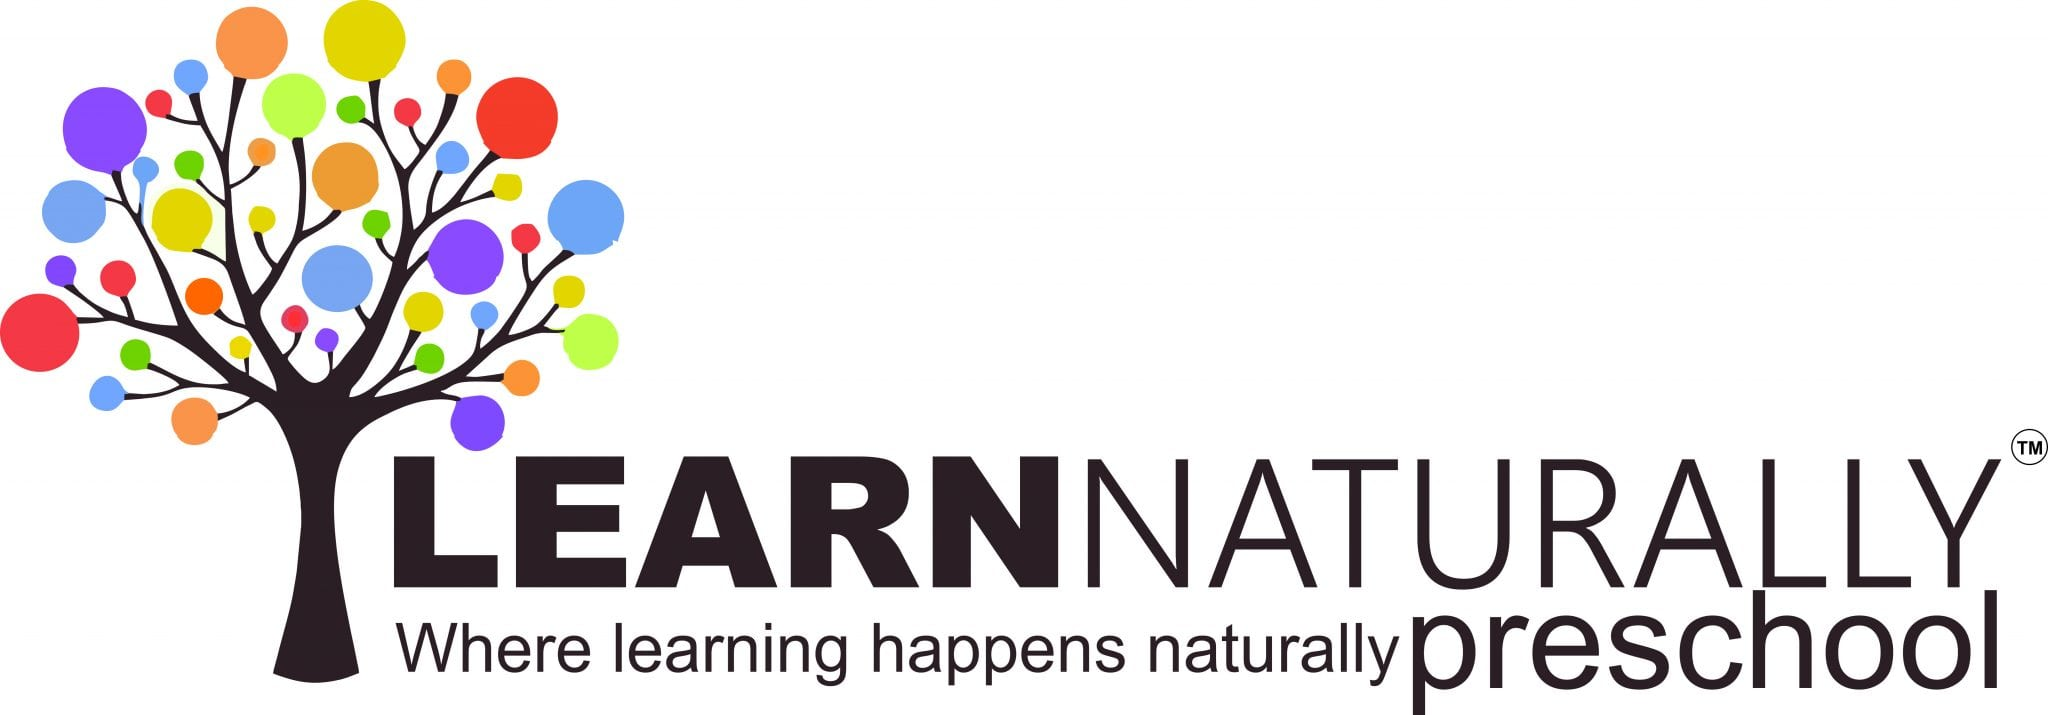 Learn Naturally Preschool